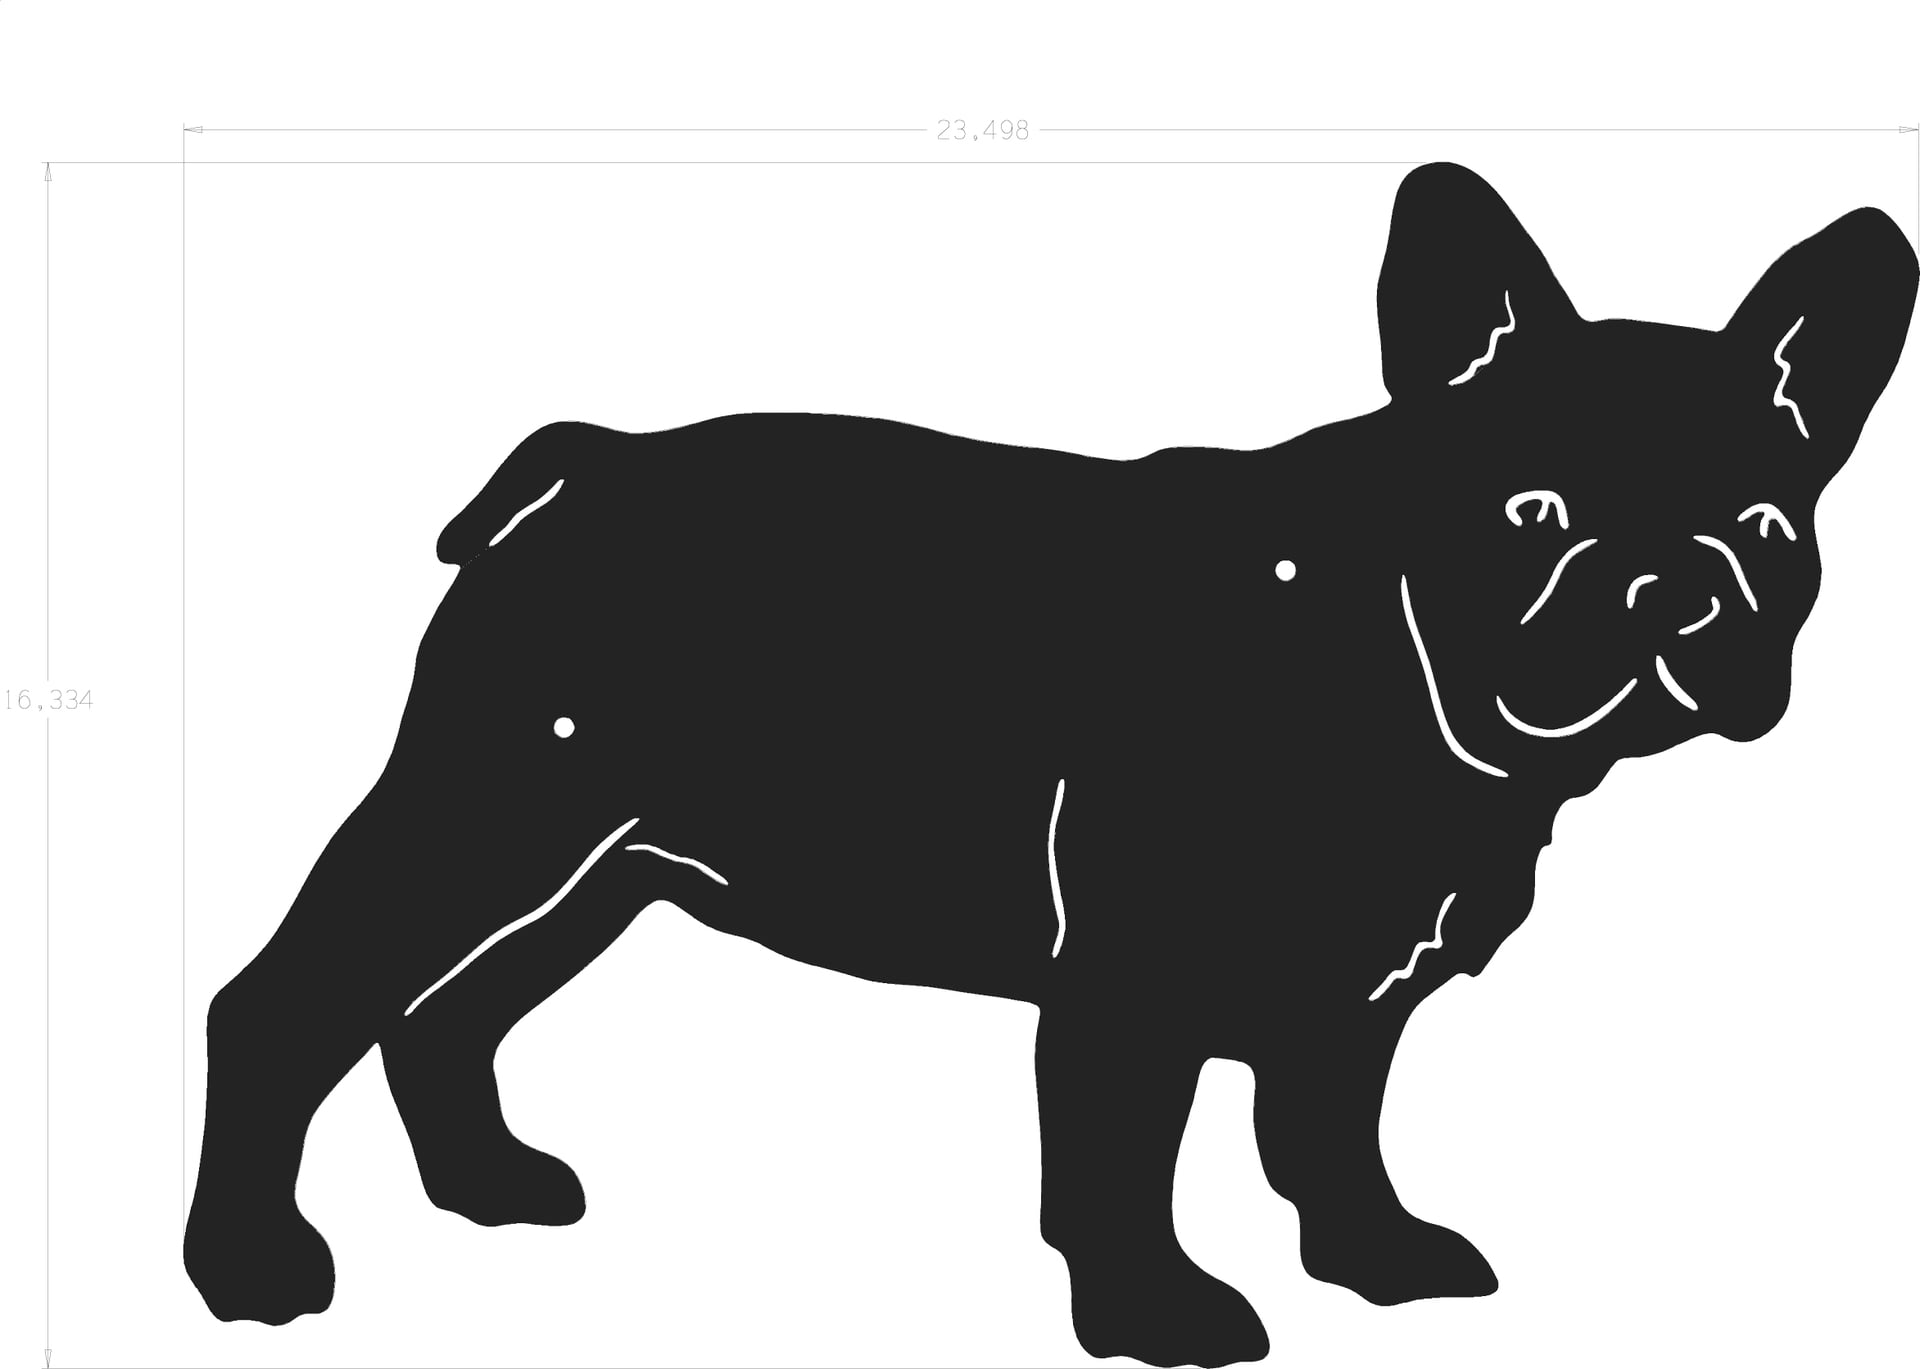 french bulldog silhouette ispca pulling out of carlow kilkenny dog shelter french silhouette bulldog